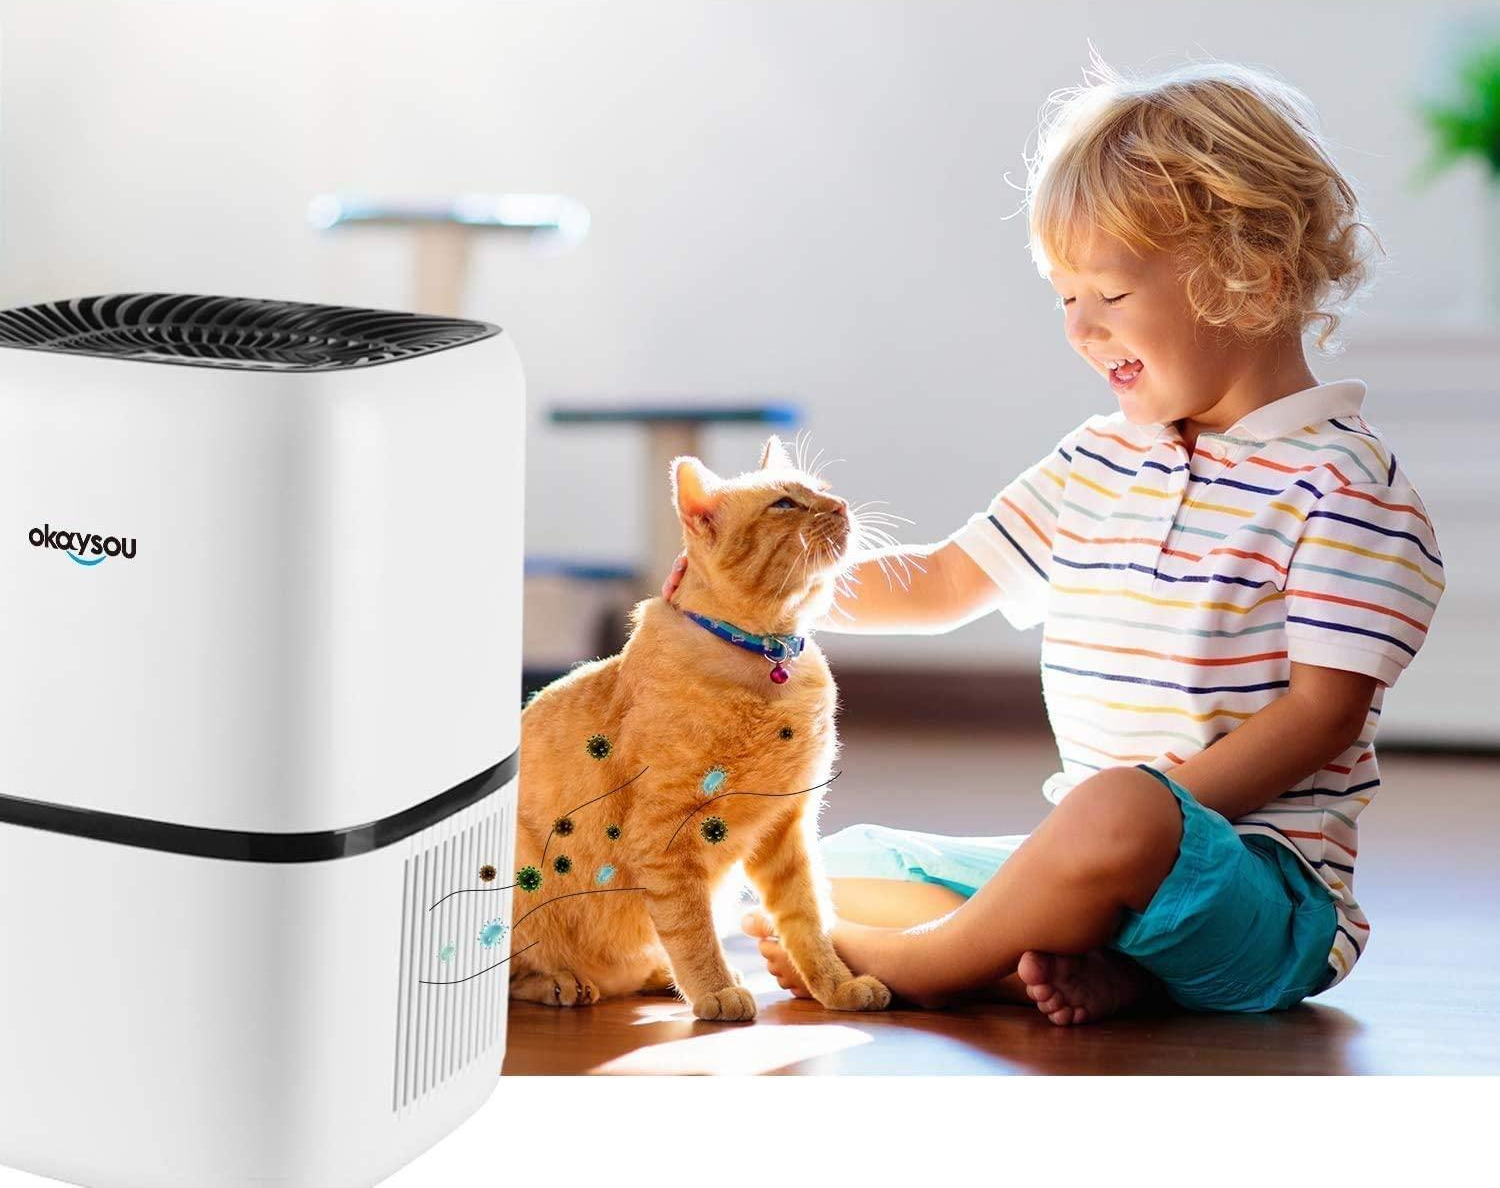 3 Okaysou Air Purifiers Review: You Sure Gonna Like it.